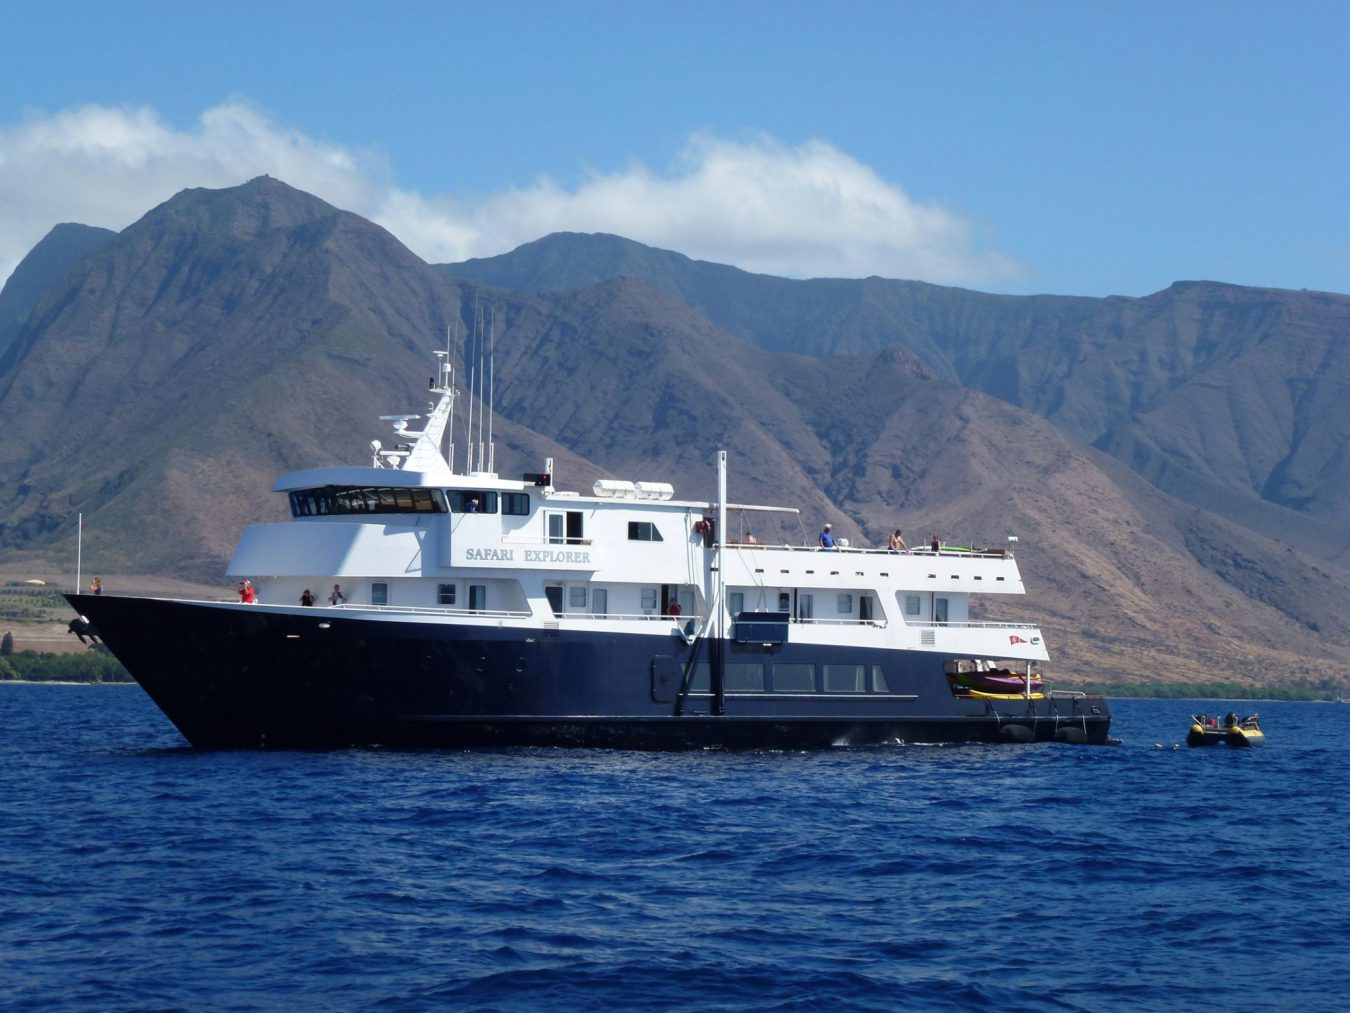 UnCruise Adventure Announces New Hawaii Itinerary AllThingsCruise - Cruise to hawaii